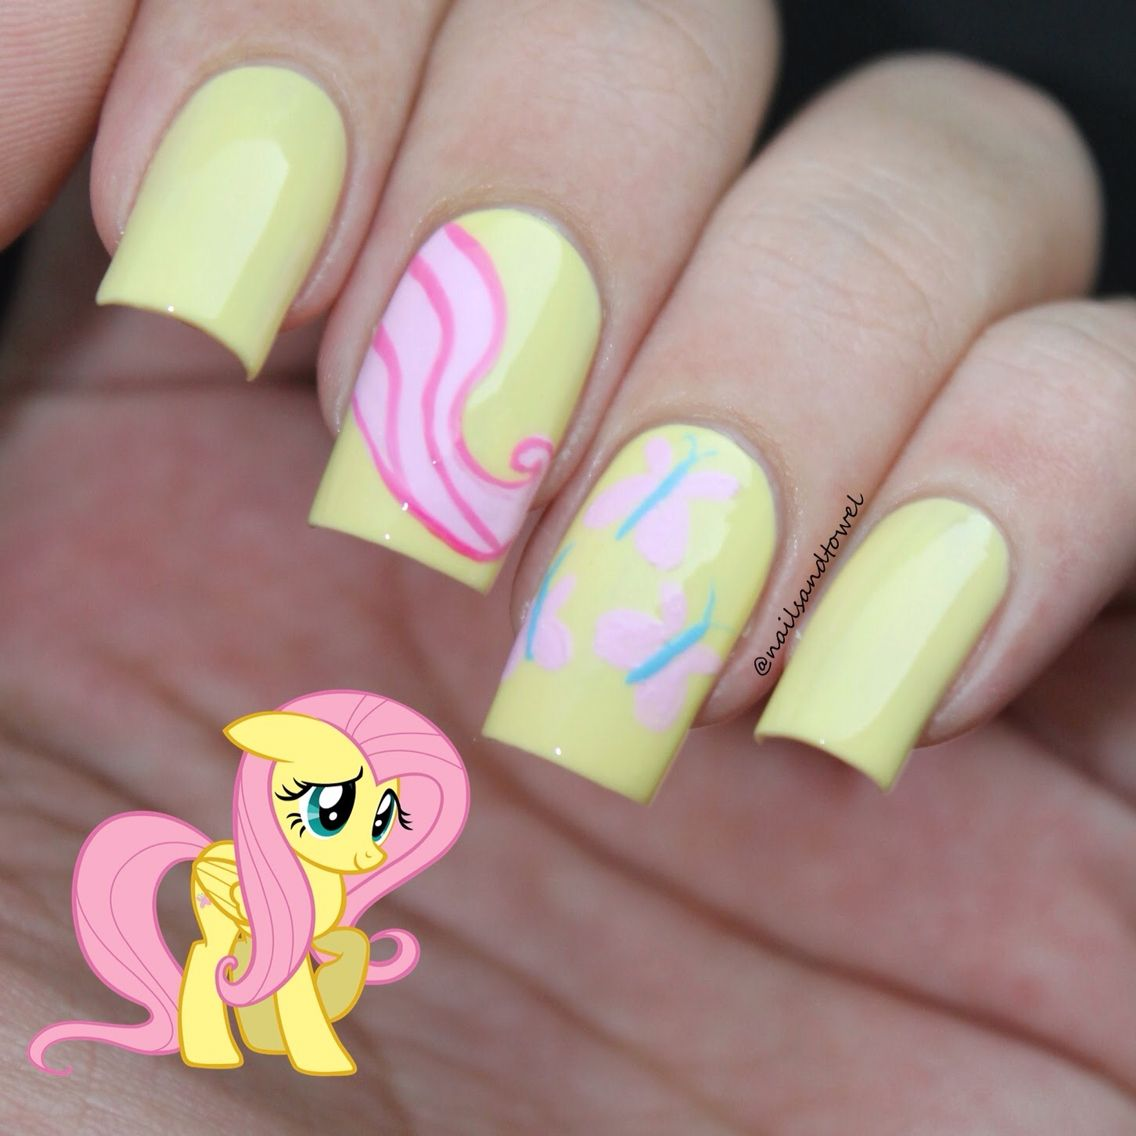 Fluttershy. Details on my blog www.katys21j.blogspot.com